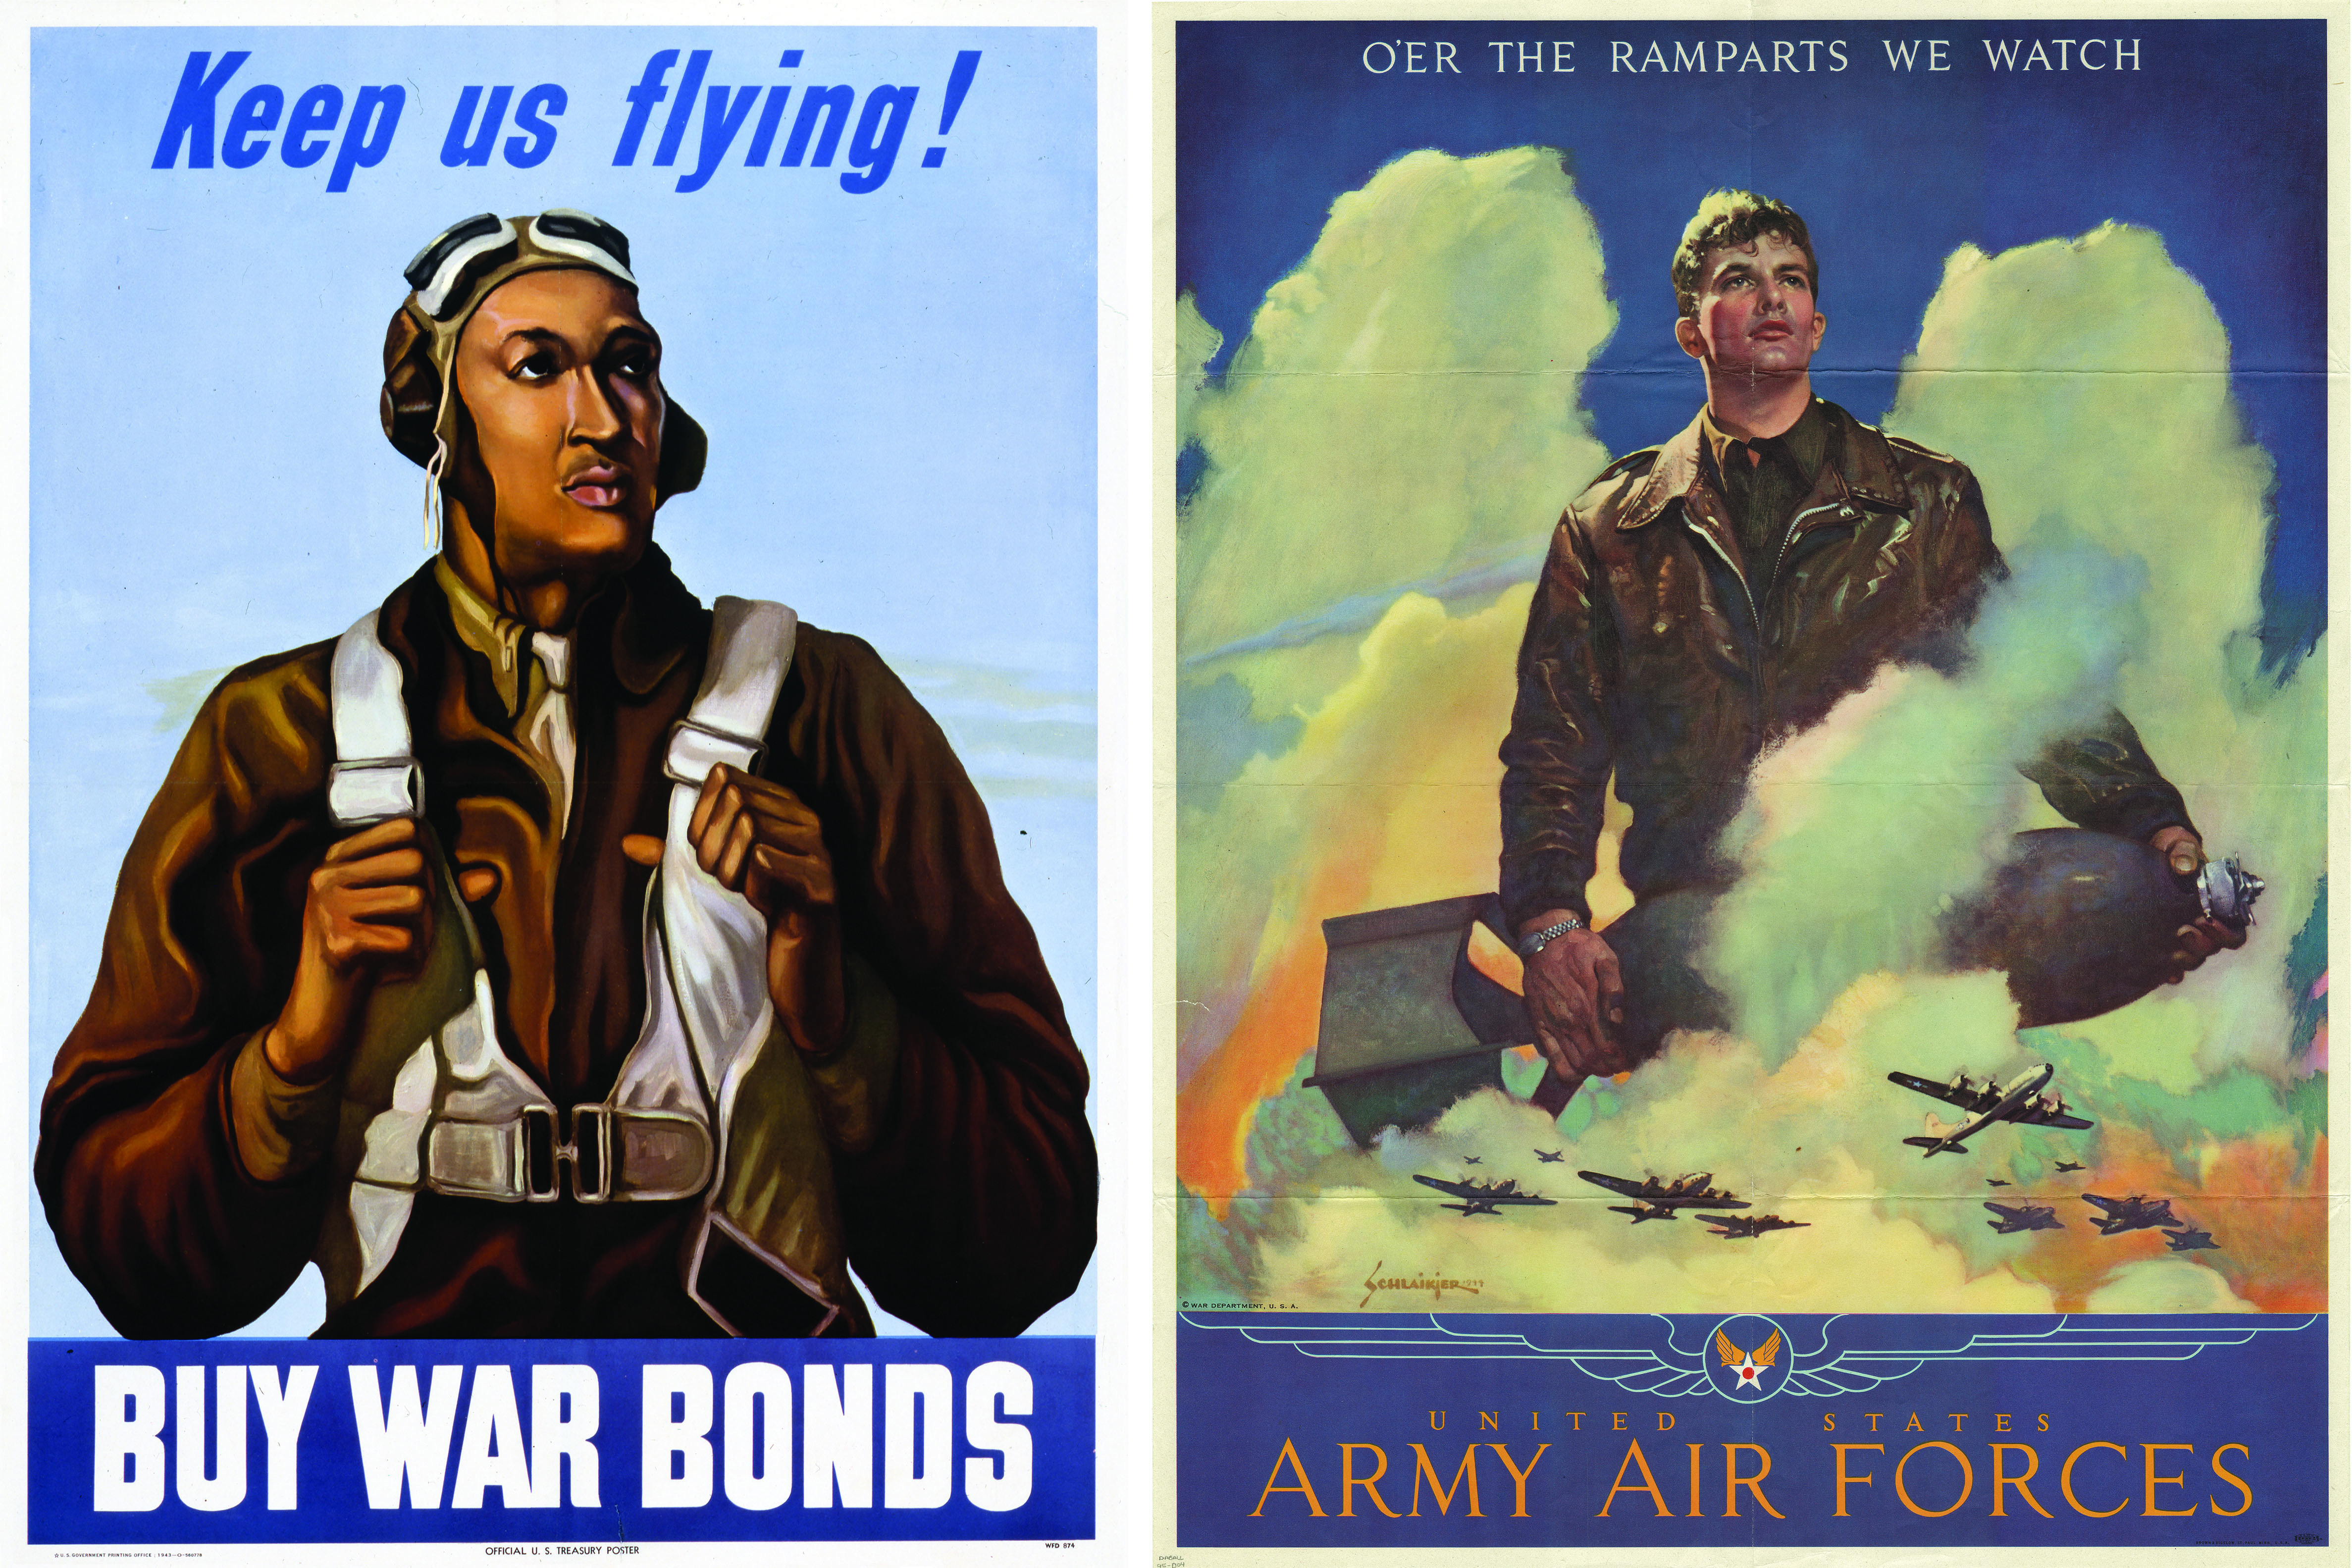 Image of Buy War Bonds poster and recruiting poster for the U.S. Army Air Forces.